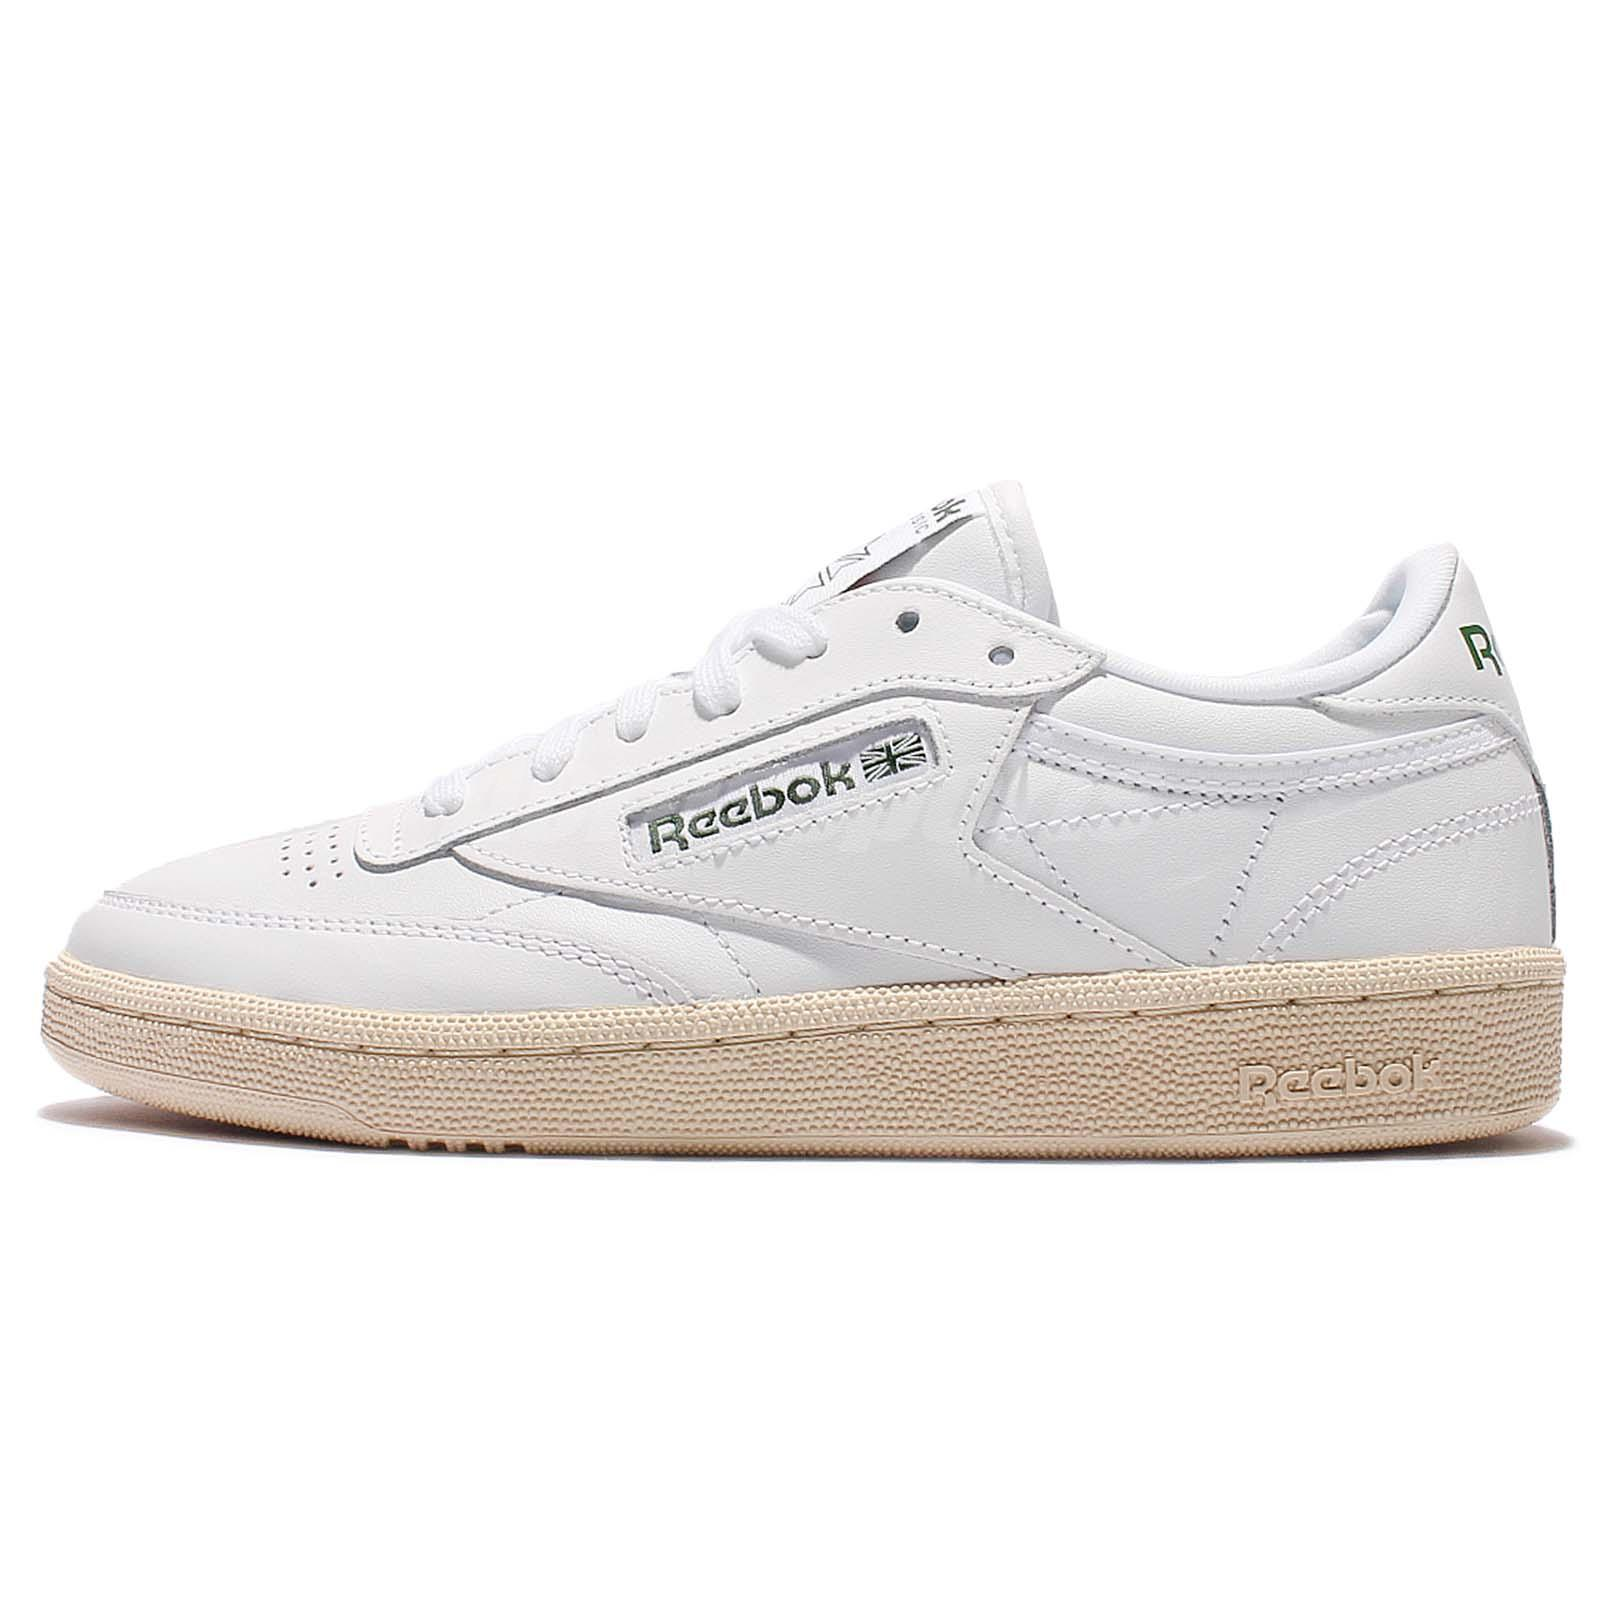 reebok classic high top shoes. reebok club c 85 su white green leather vintage classic women shoes bs7491 high top